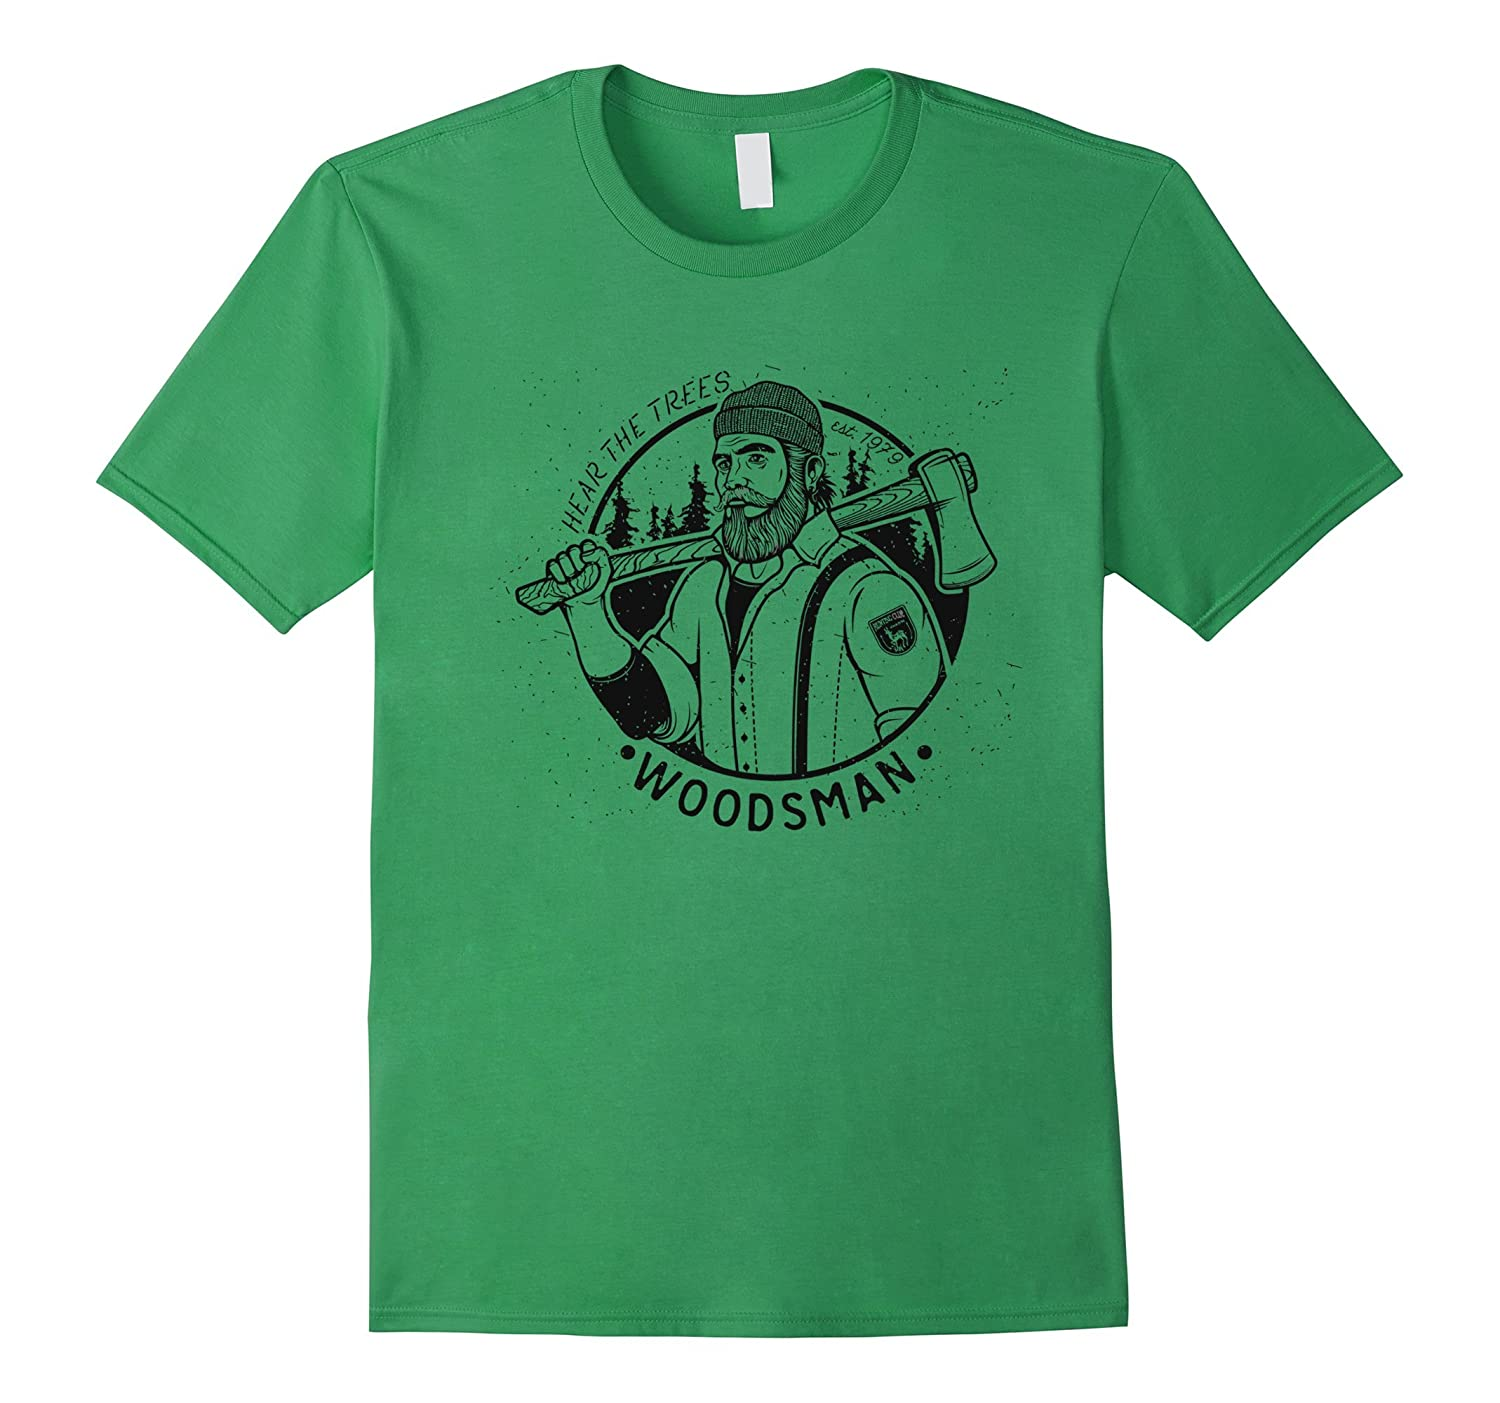 Axe-Man Lumberjack & Woodsman Outdoors T-Shirt-FL